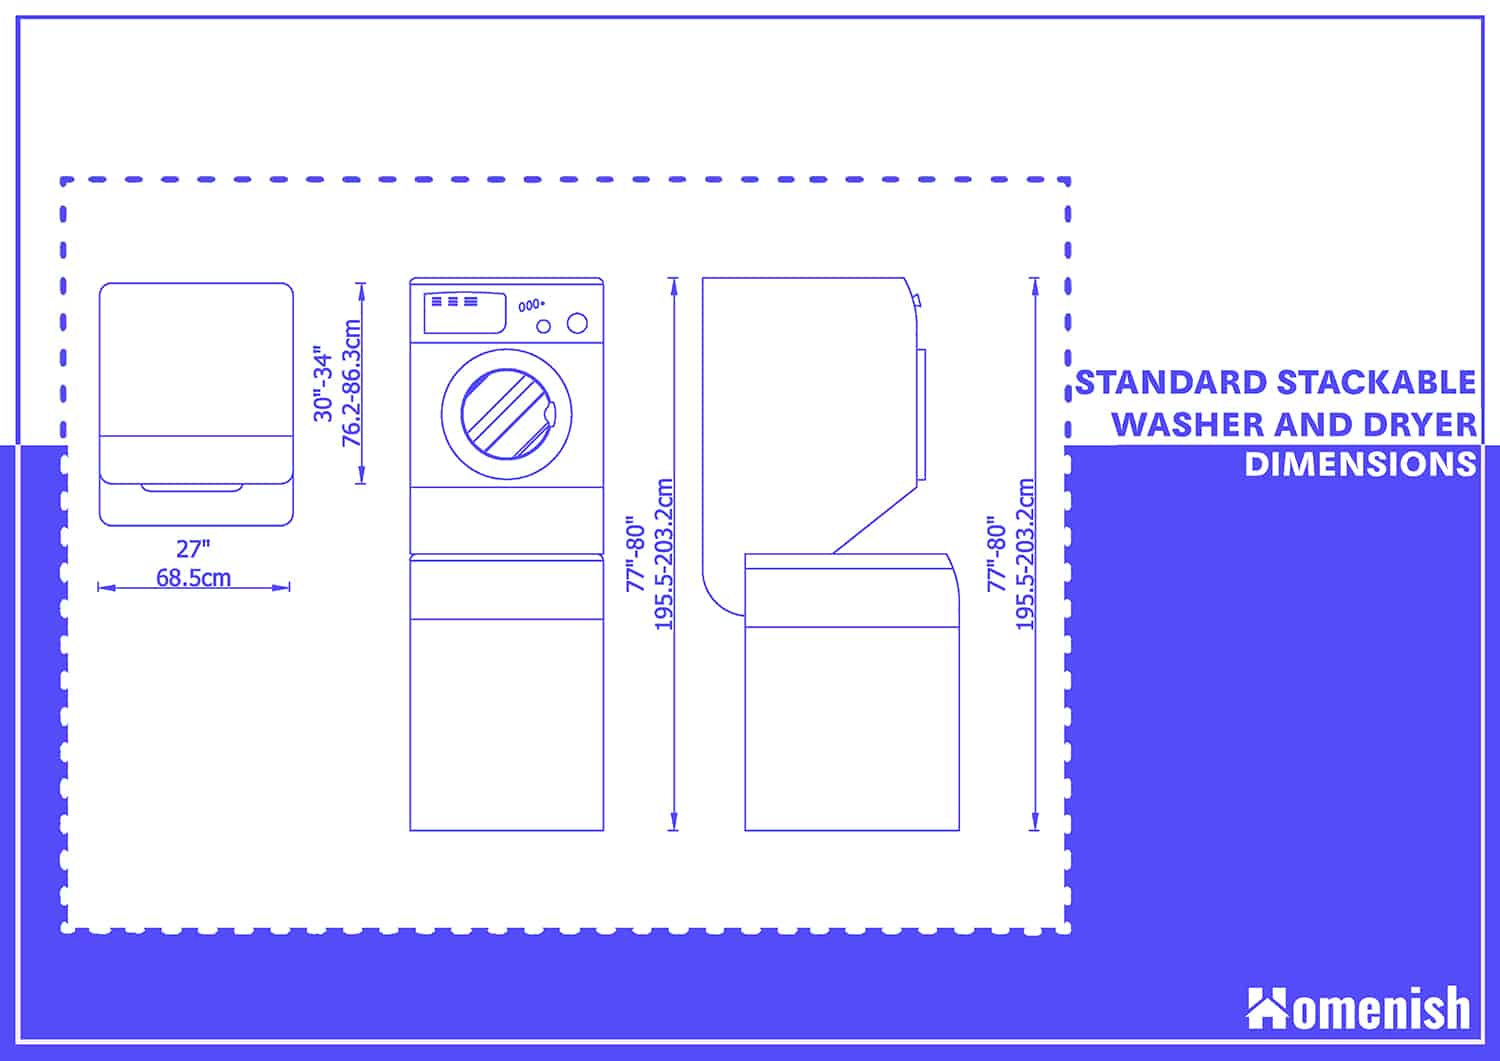 Front-Loading Washer and Dryer Dimensions